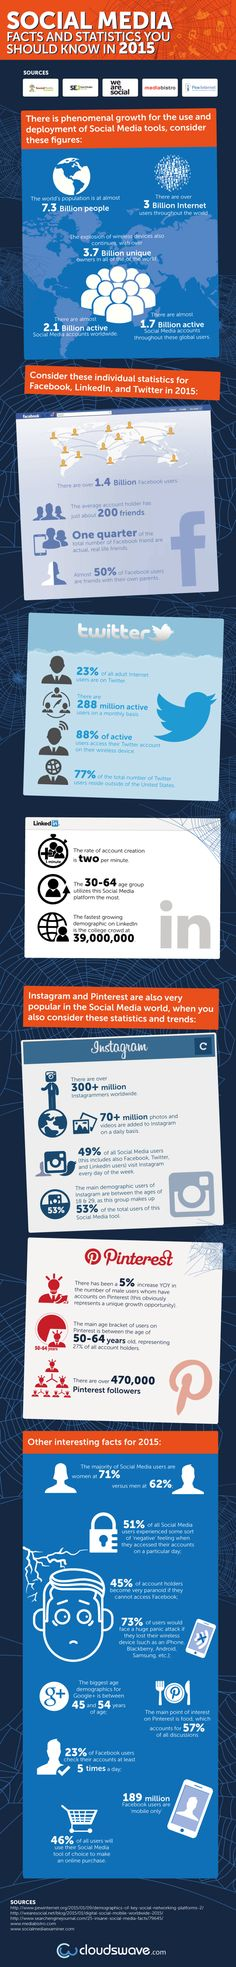 2015 Social Media Statistics & Facts Infographic - @therealvisually